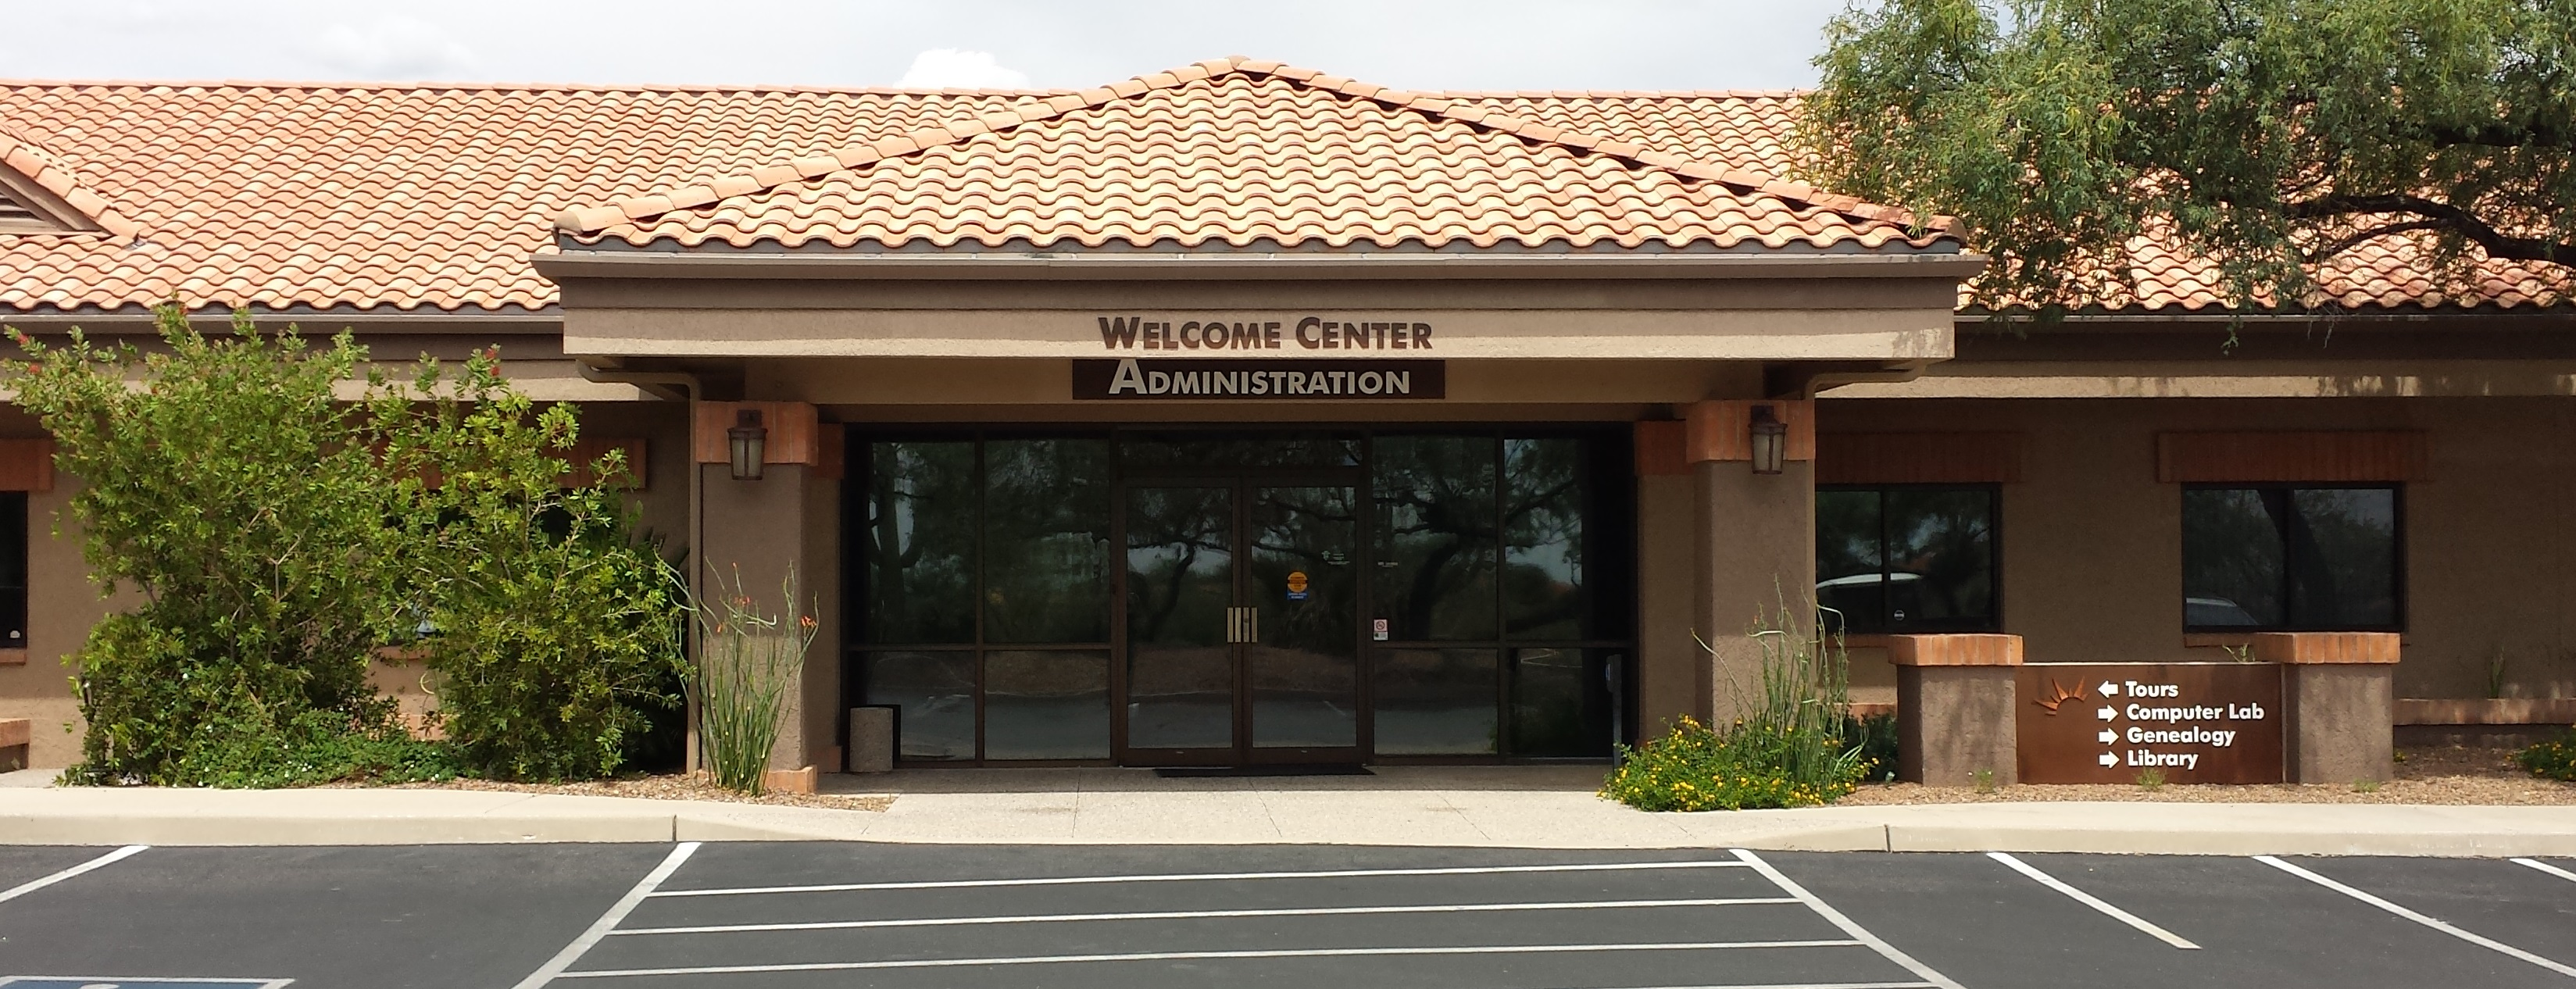 Welcome/Administration Center